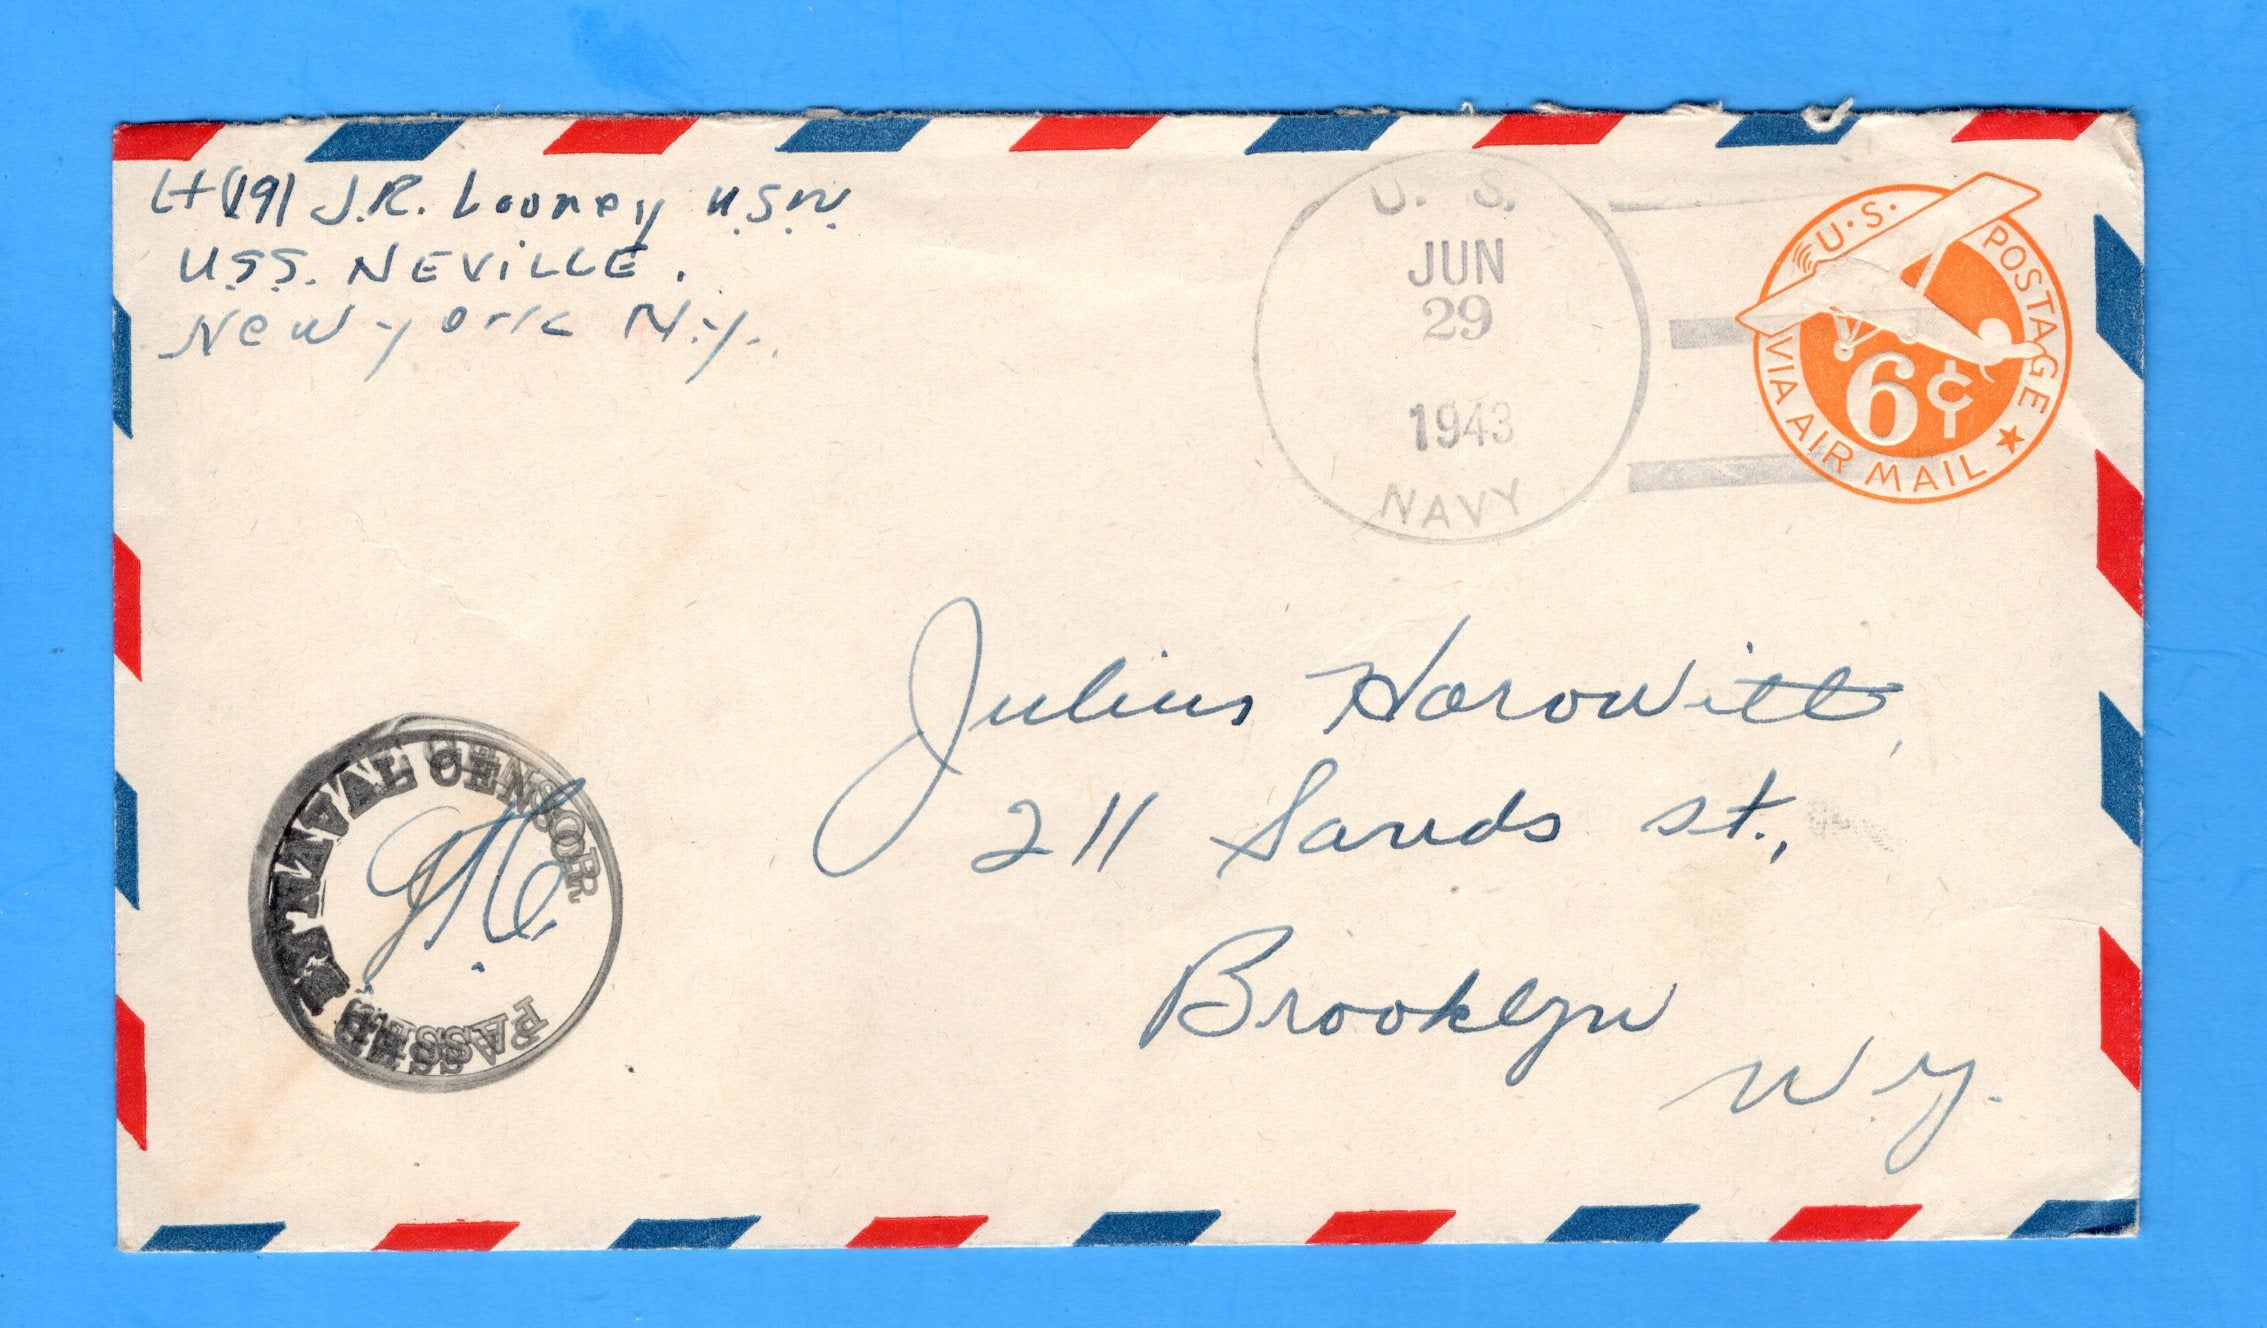 USS Neville APA-9 Sailor's Censored Mail June 29, 1943 - North Africa